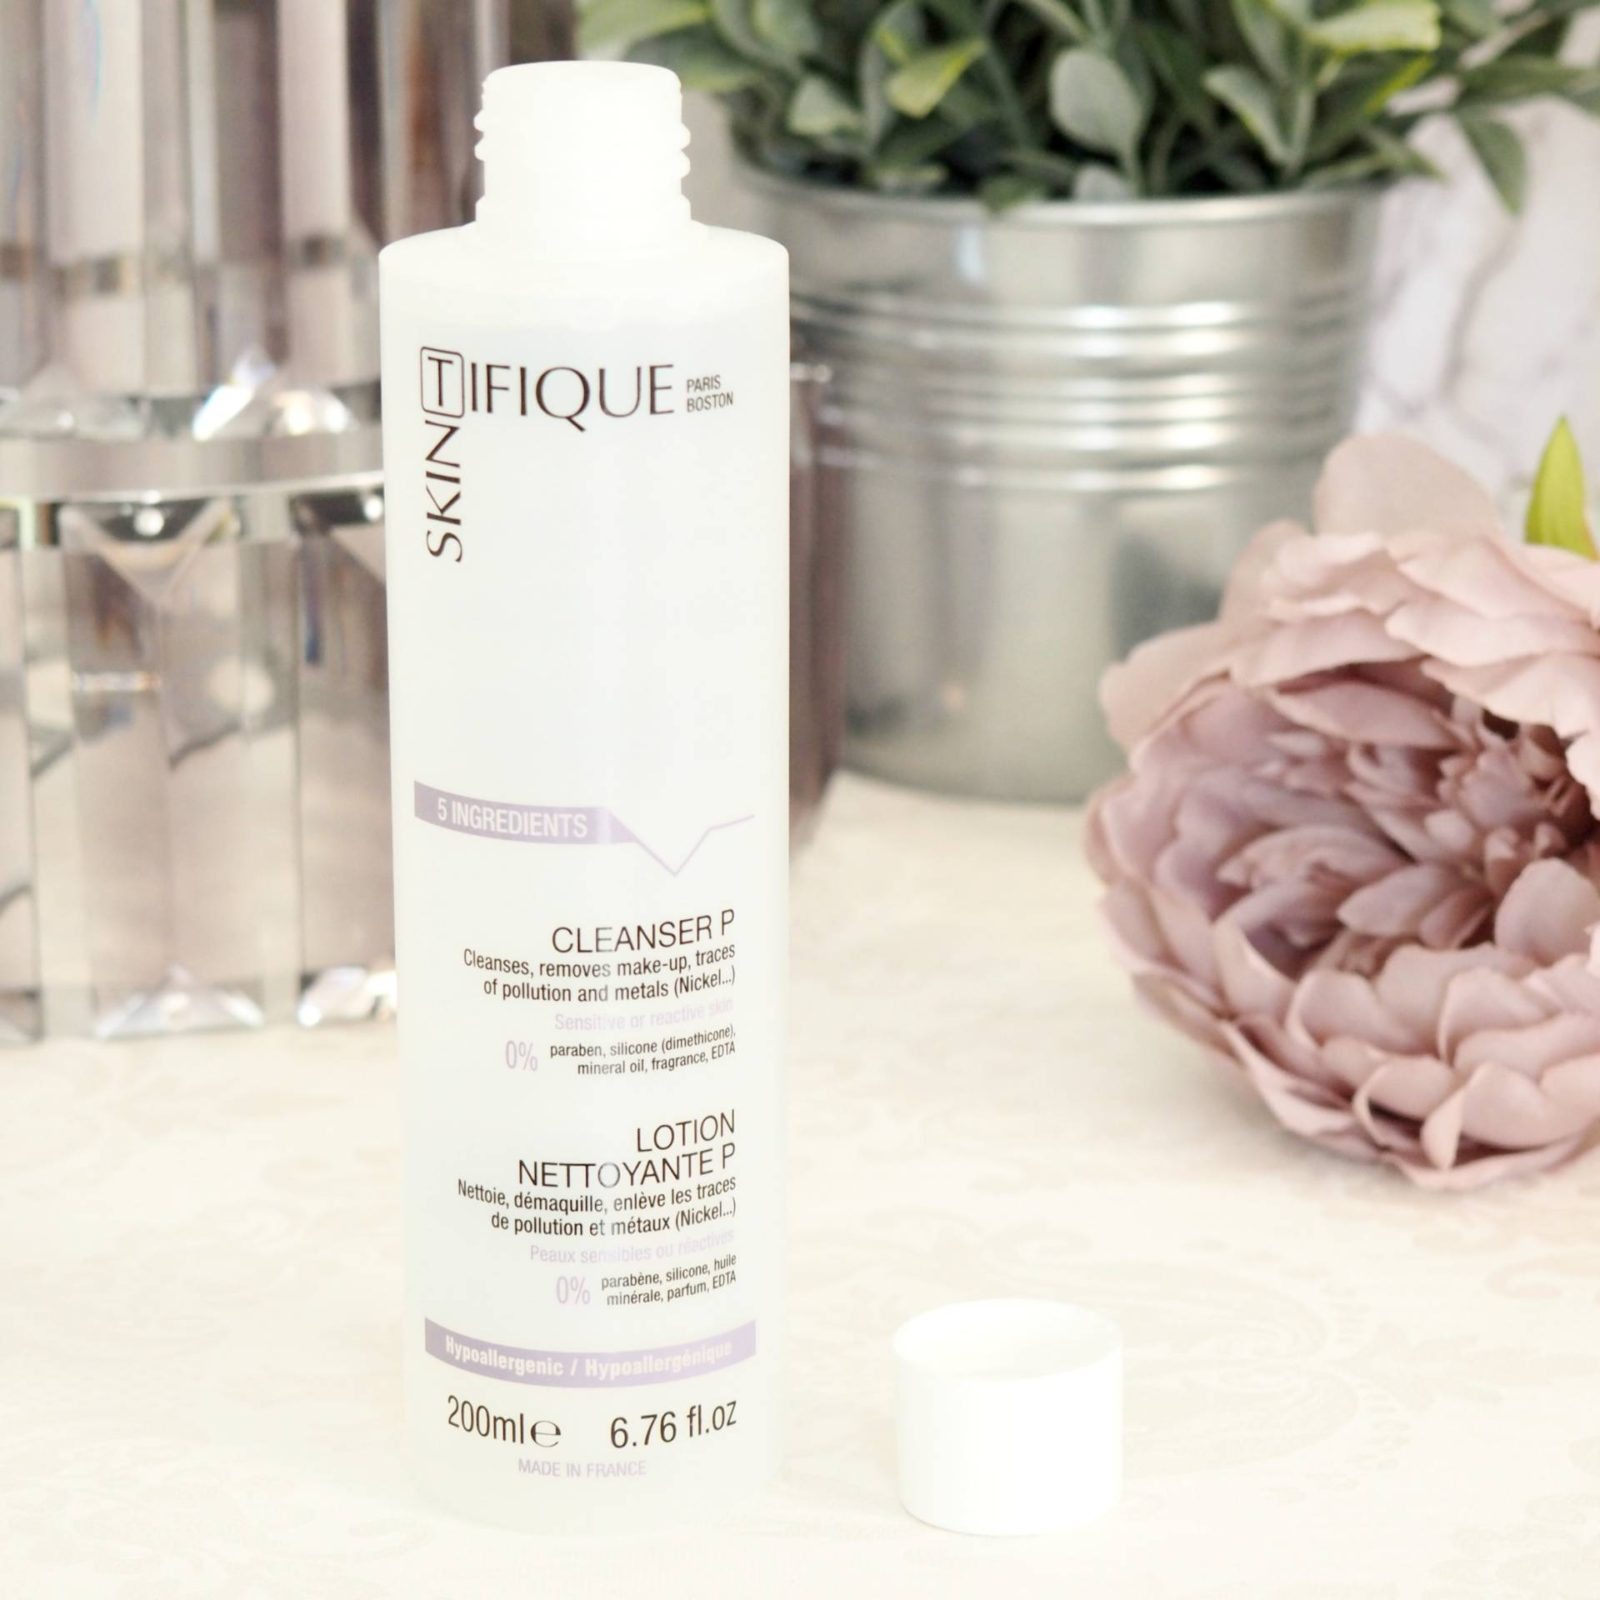 Skintifique Cleanser P for Sensitive and Irritated Skin